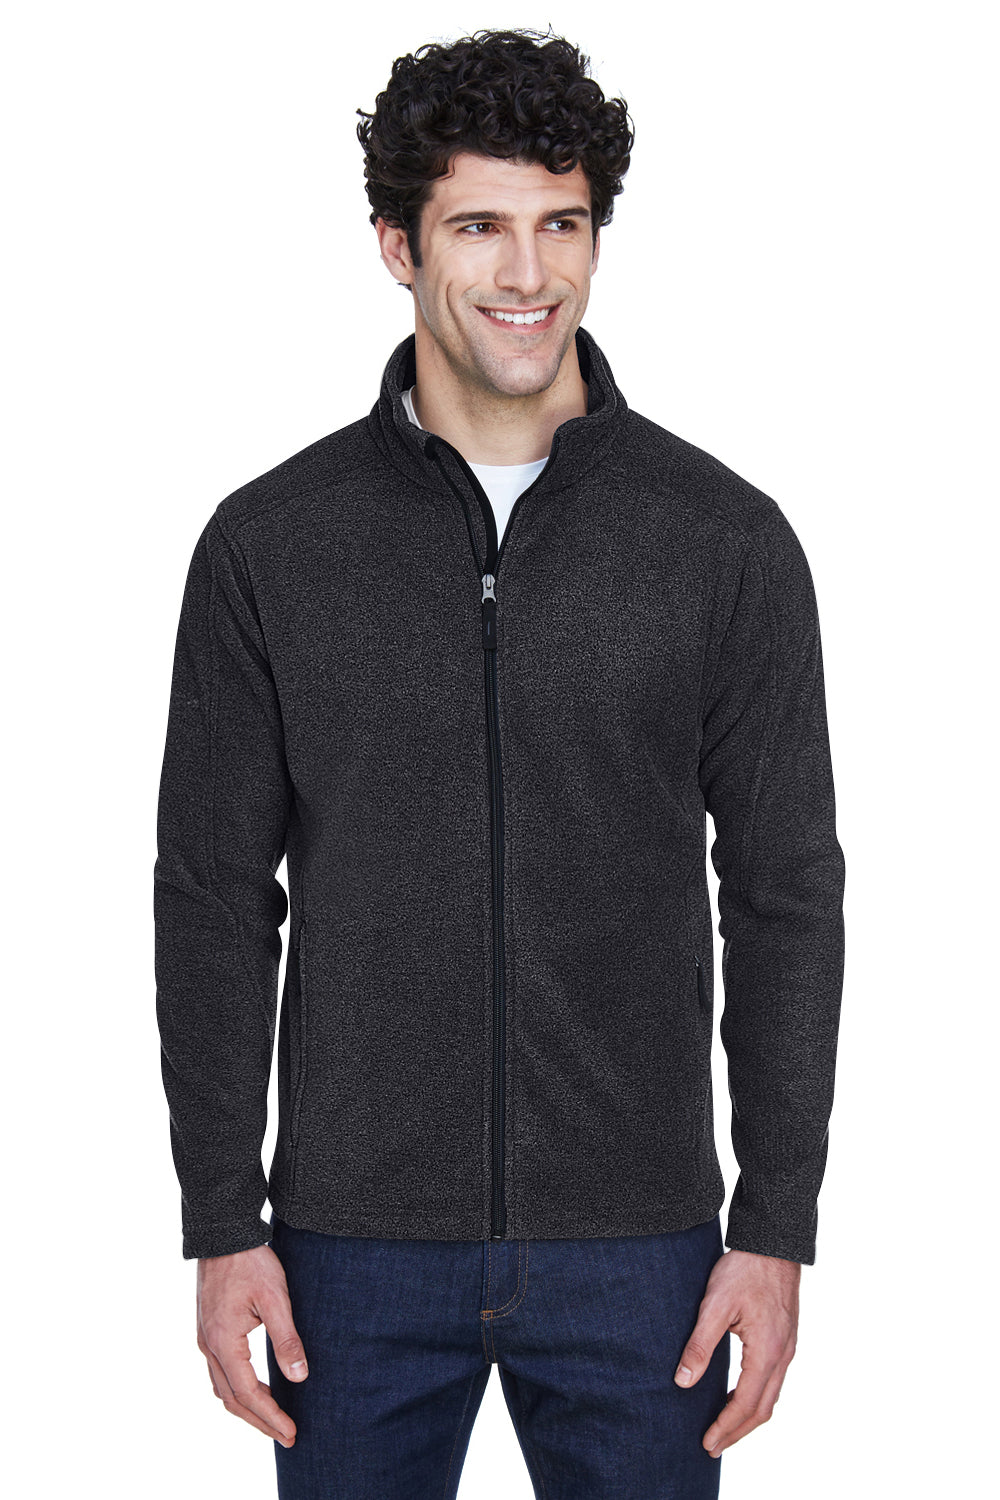 Core 365 88190 Mens Journey Full Zip Fleece Jacket Heather Charcoal Grey Front